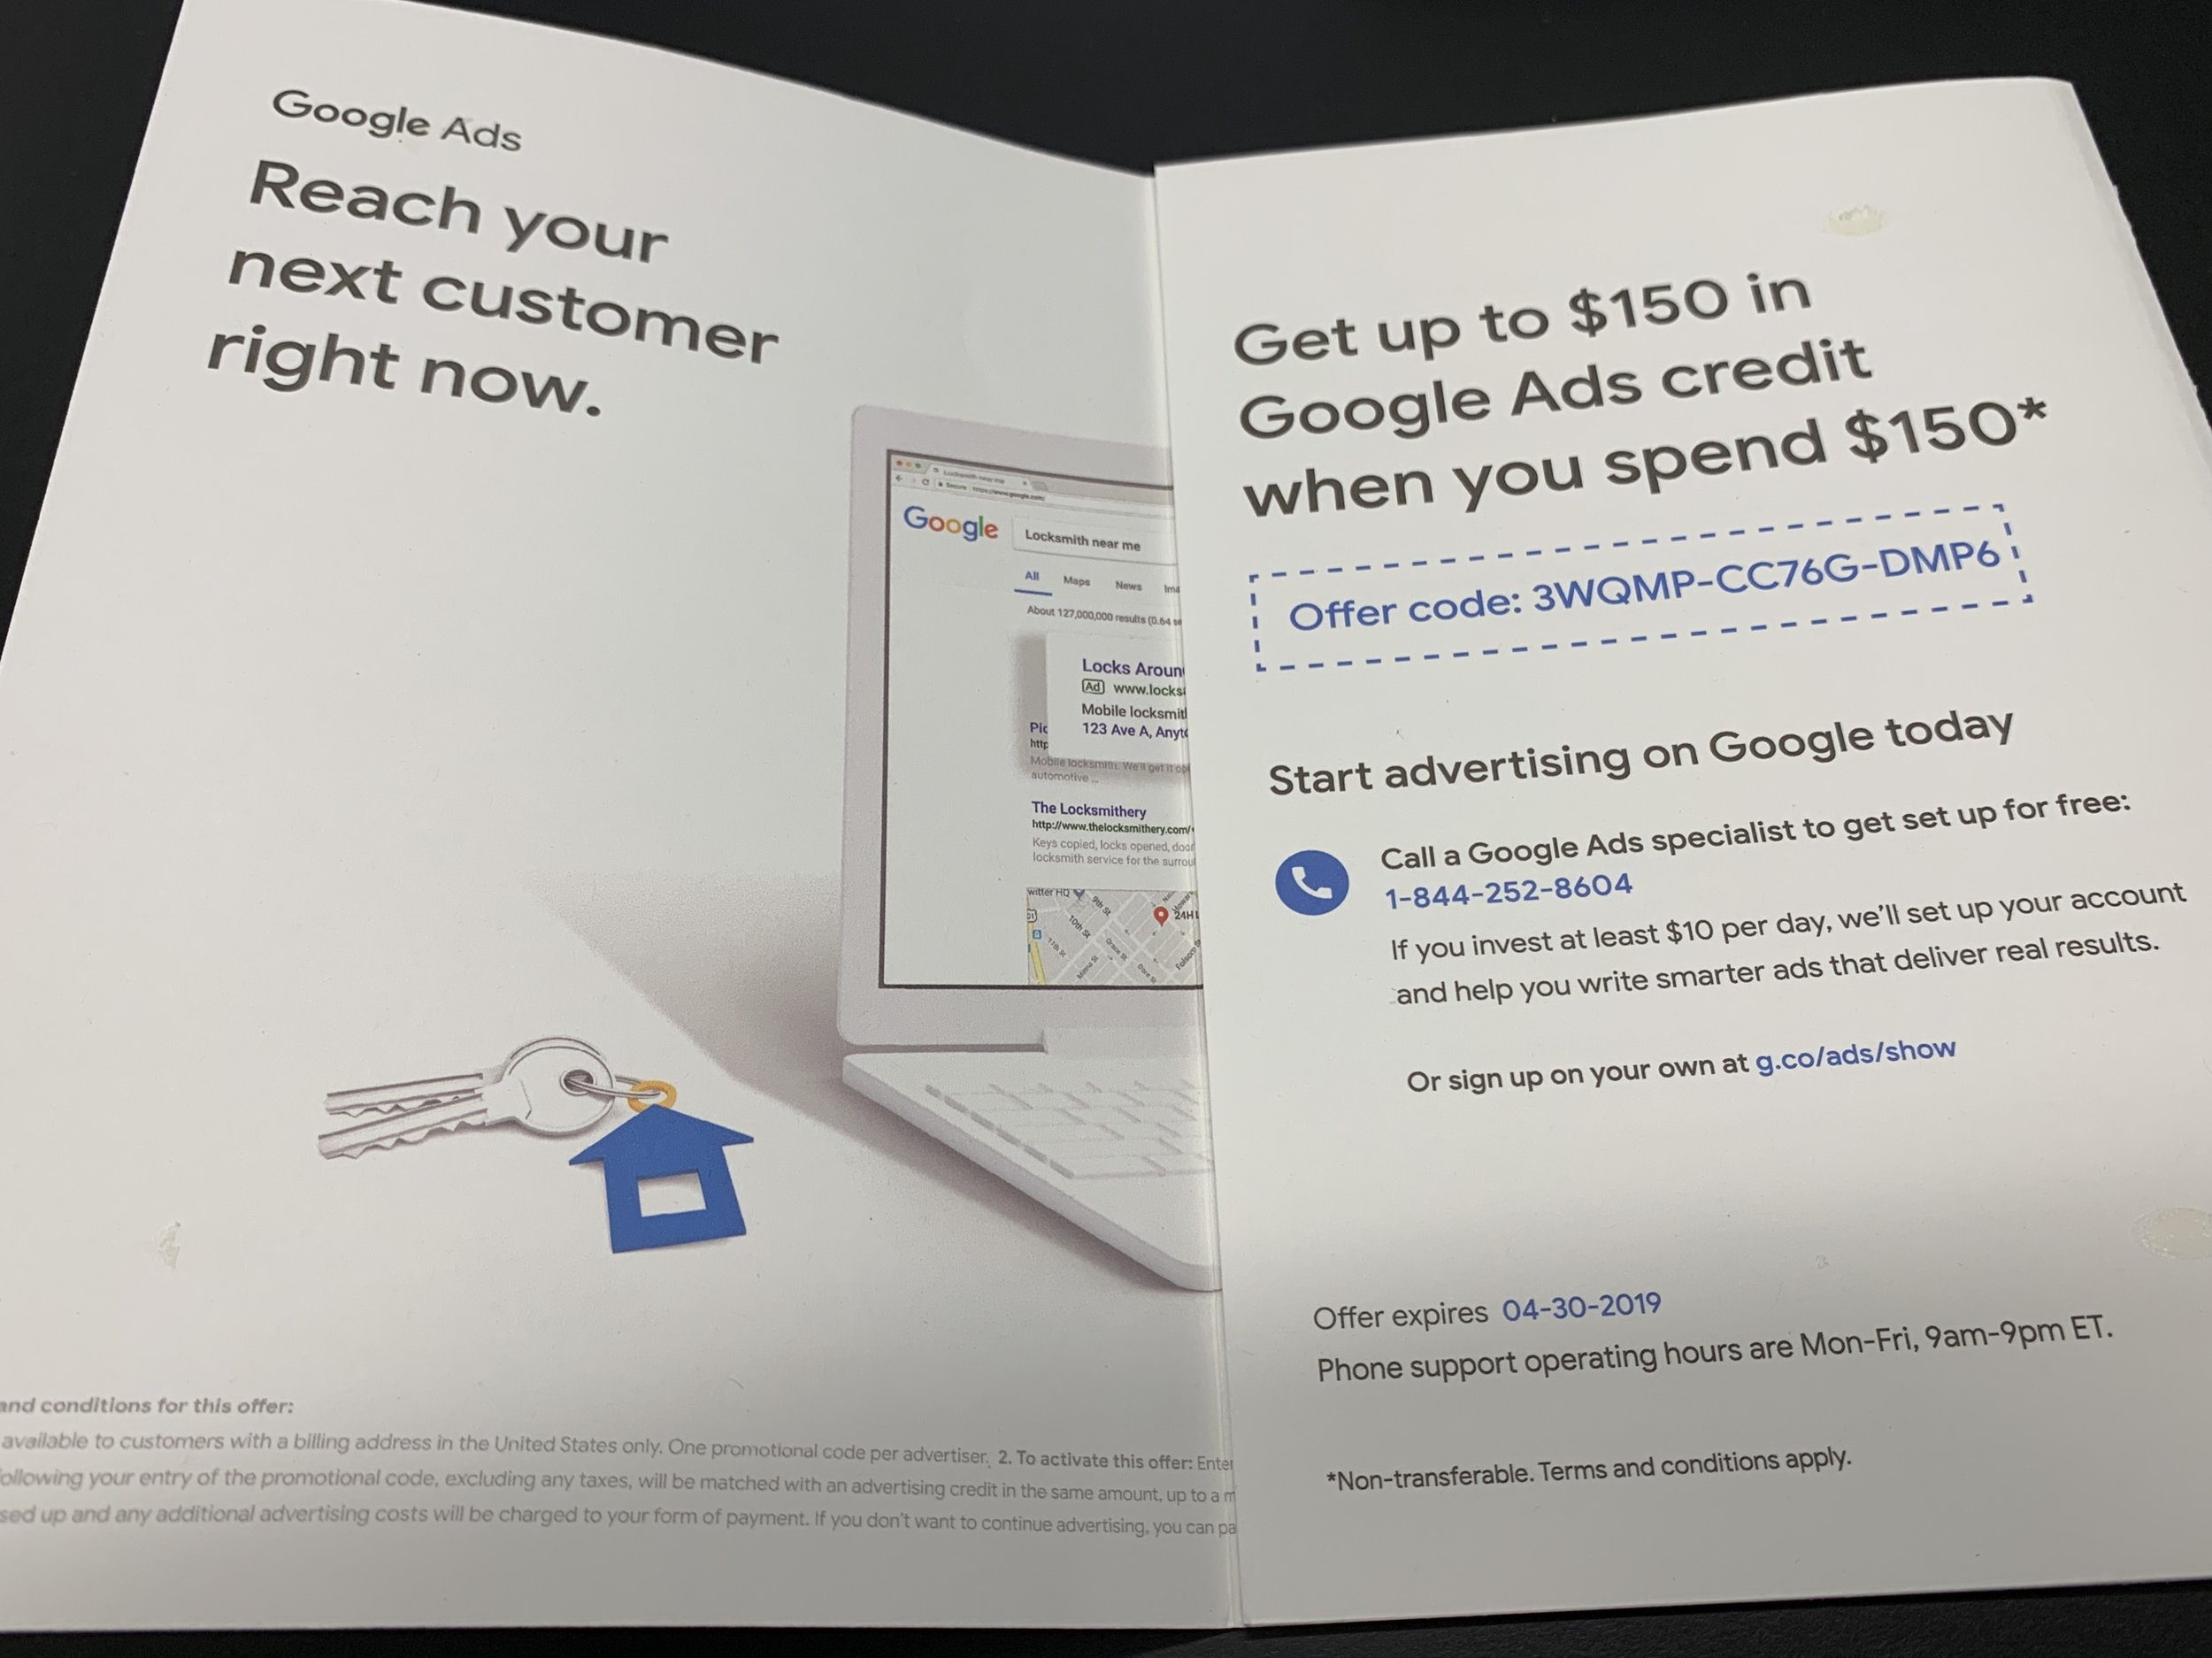 Google Uses Direct Mail